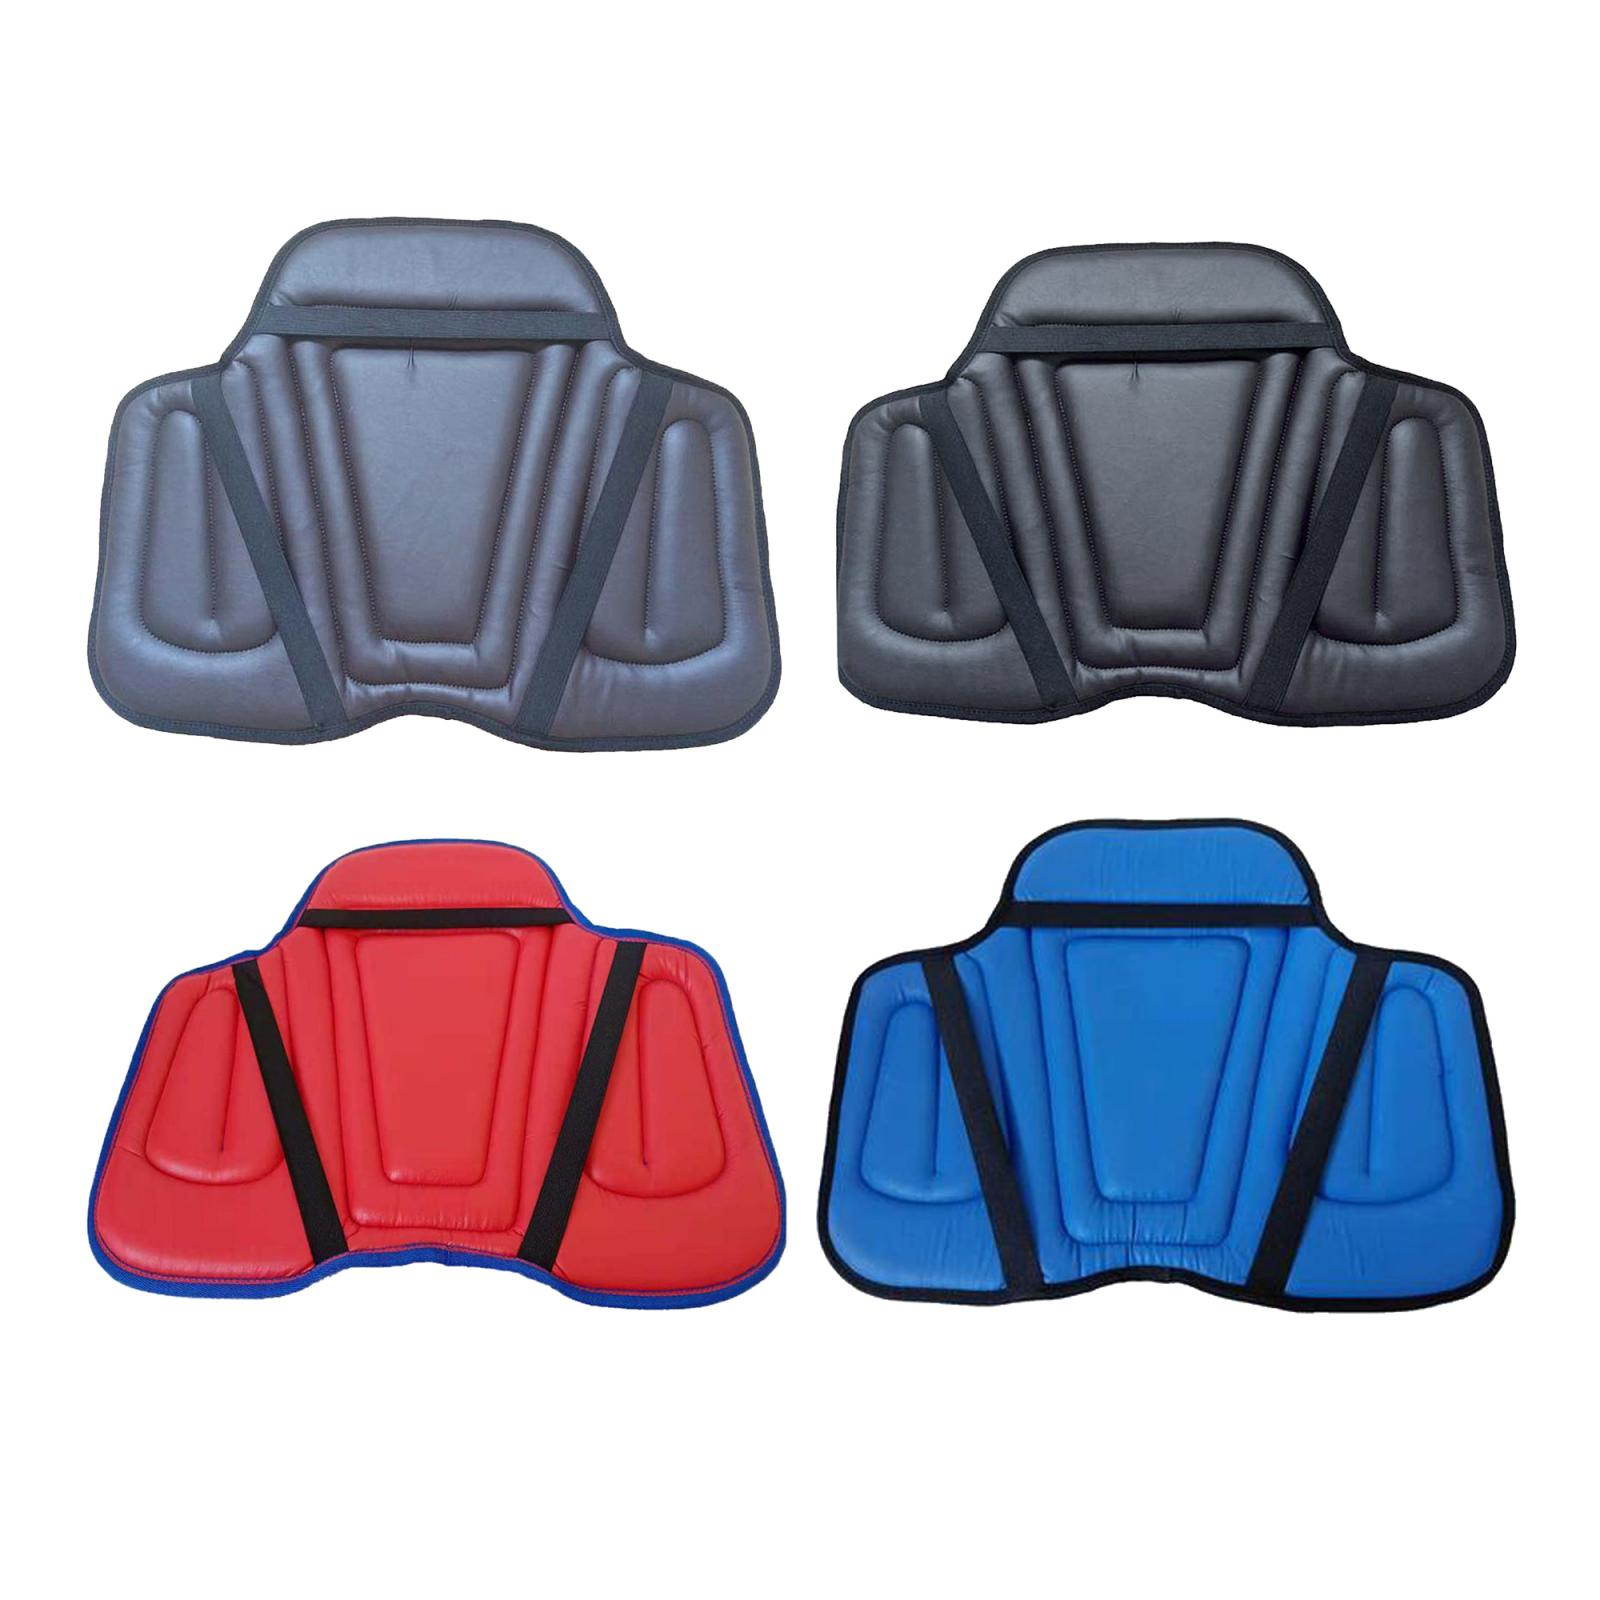 Outdoor PU Saddle Safe Horse Soft Equestrian Seat Pad Horse Riding Pad